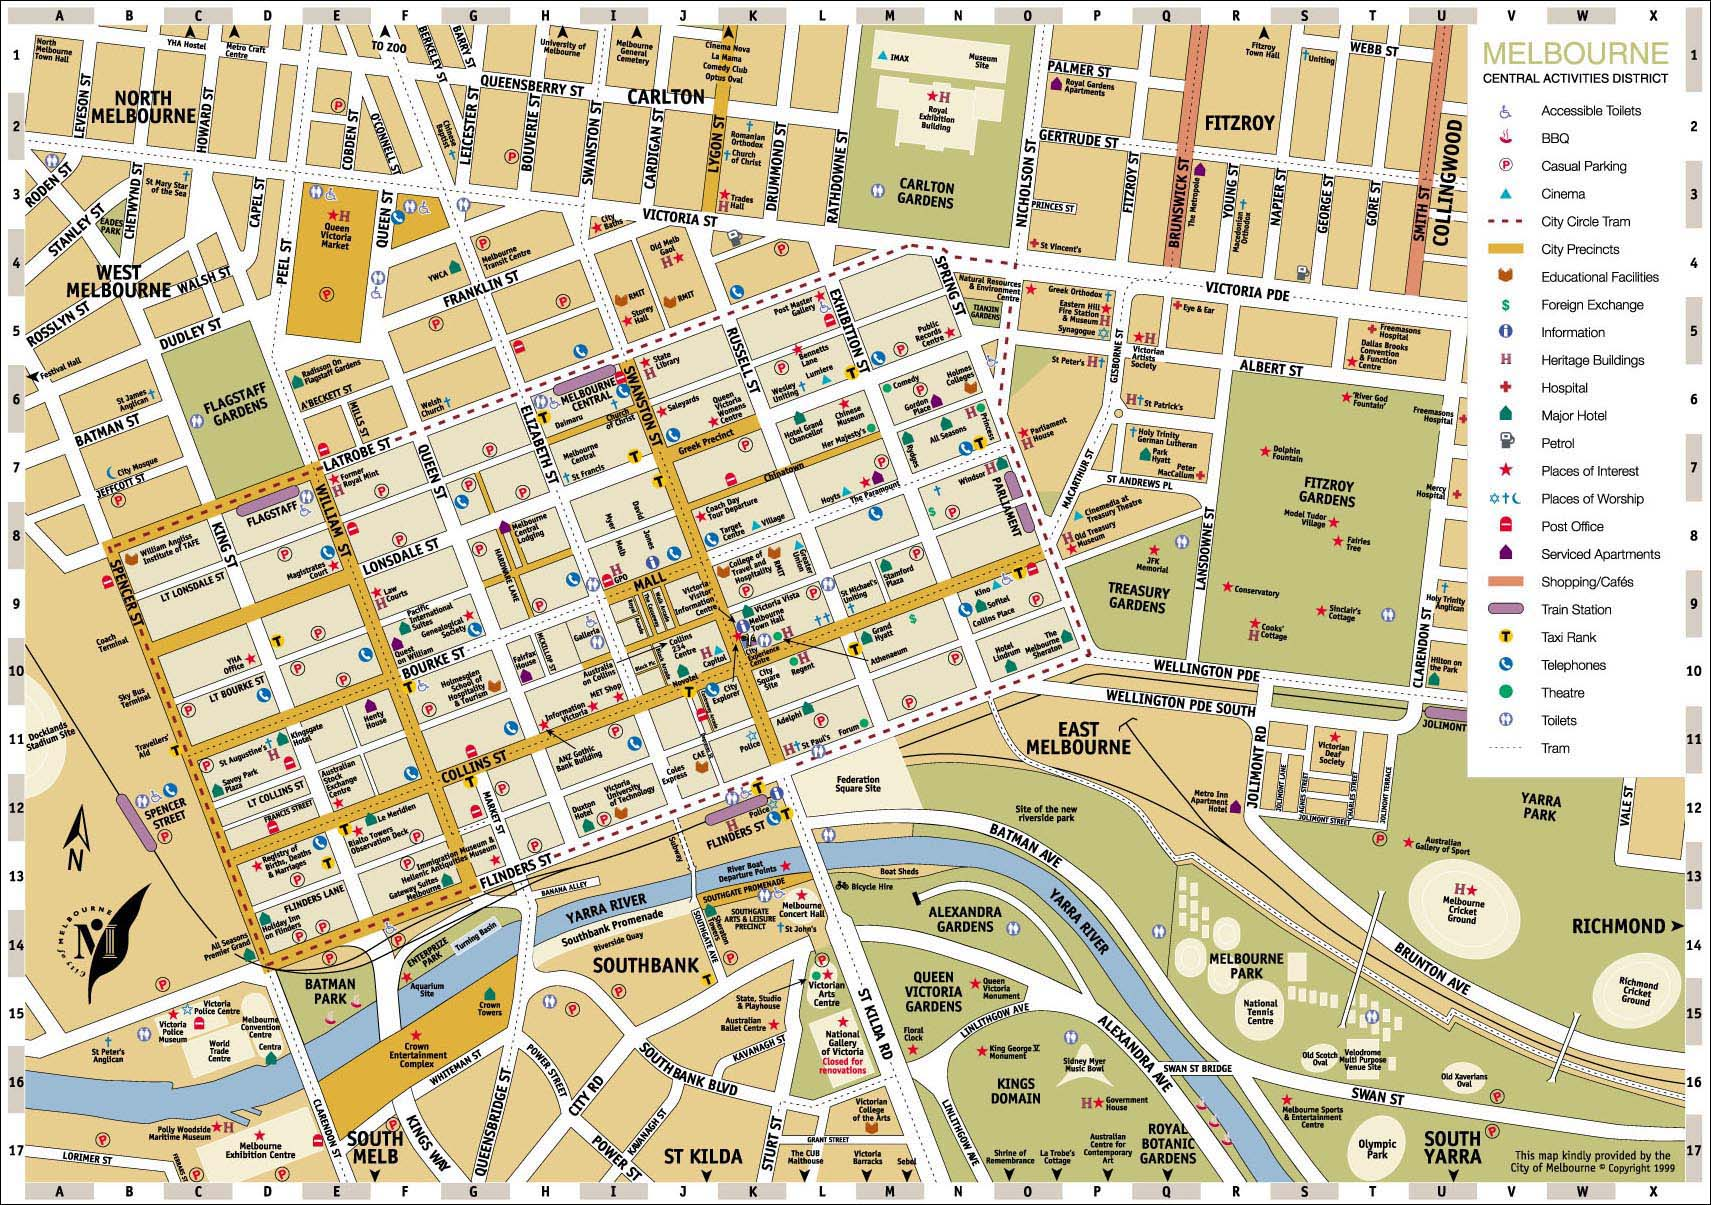 Melbourne Central District Tourist Map - Melbourne Australia • mappery